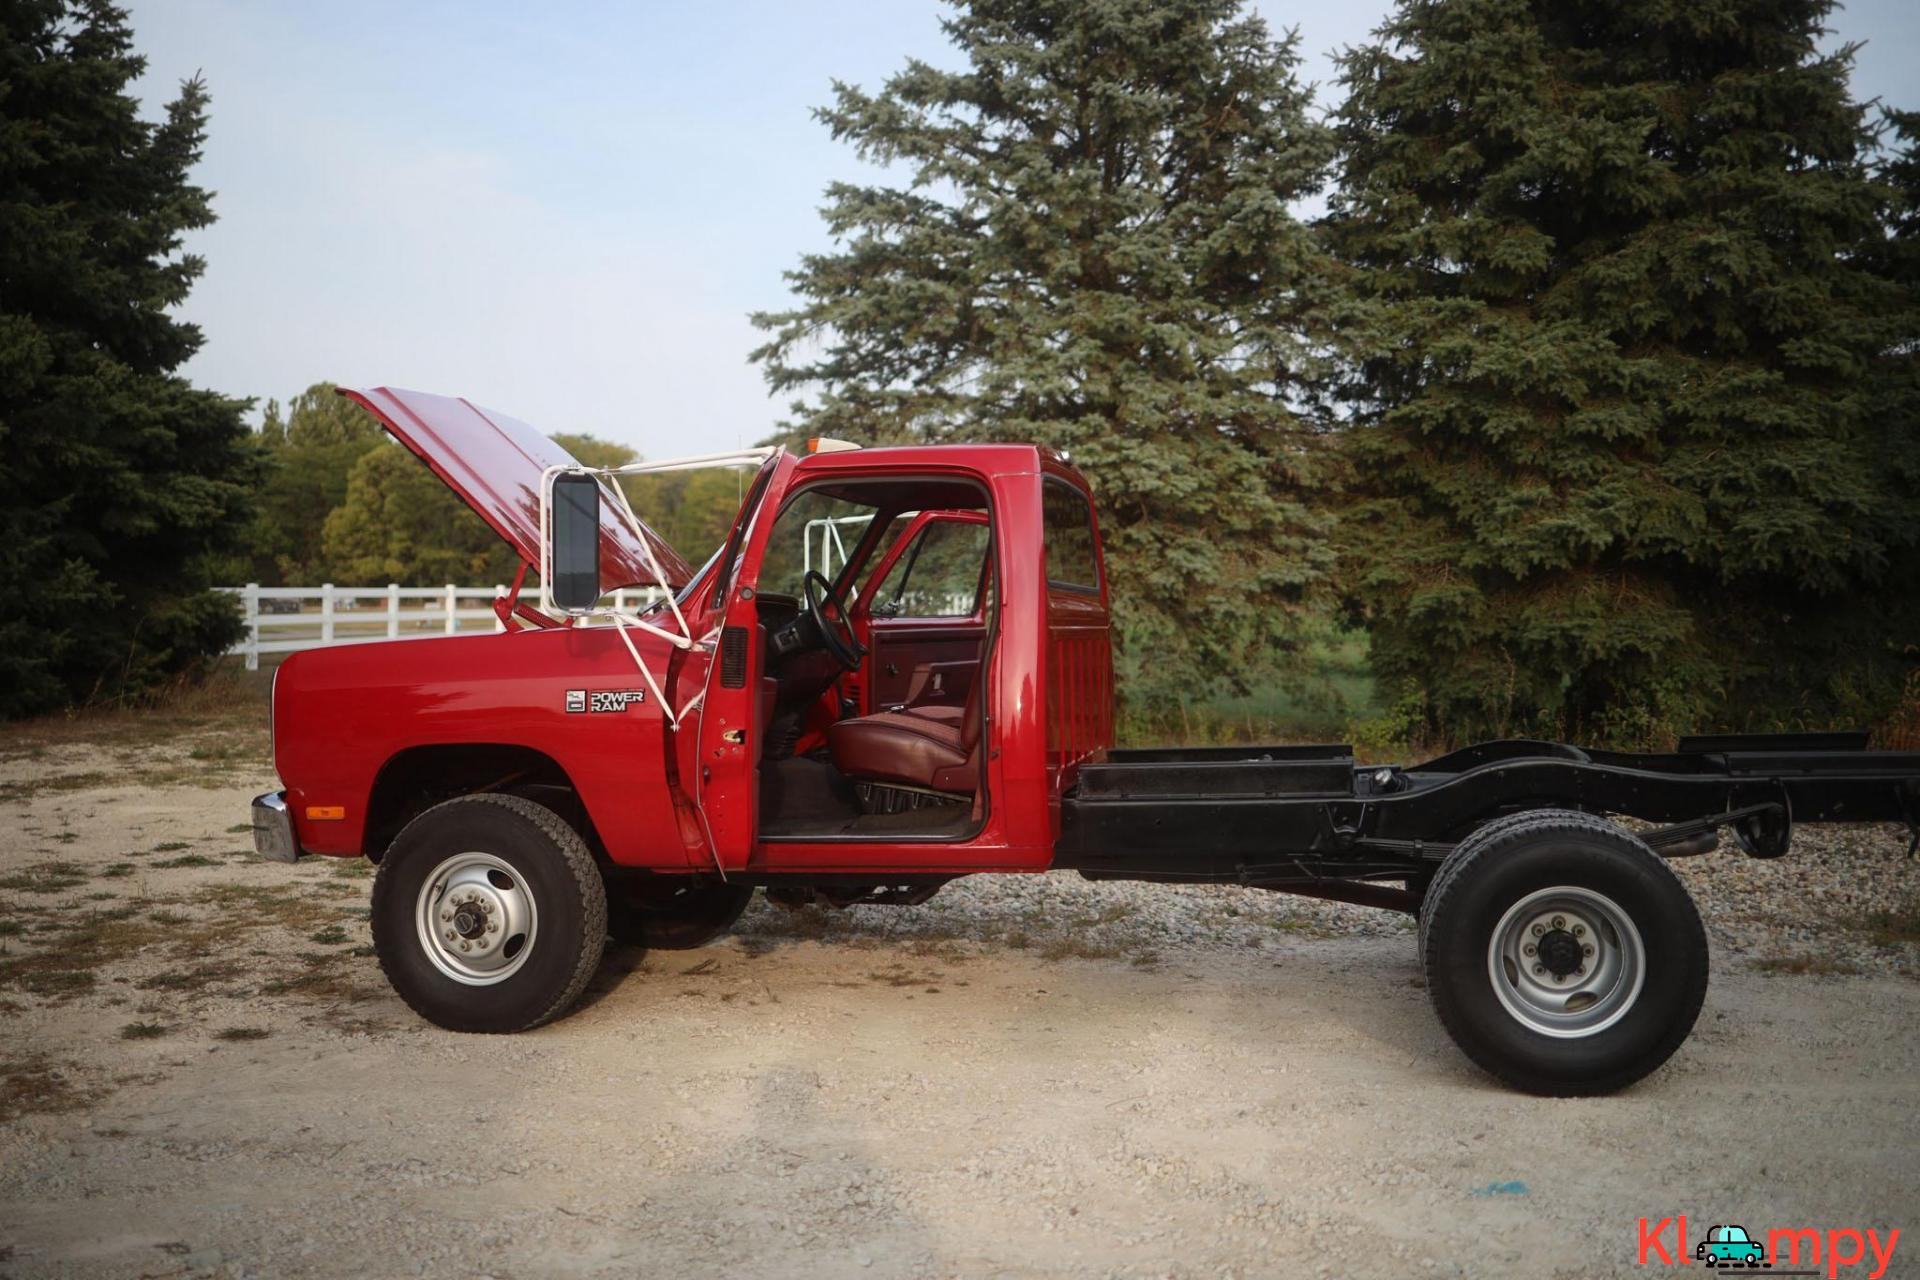 1989 Dodge Power Ram W350 4×4 Truck - 10/20